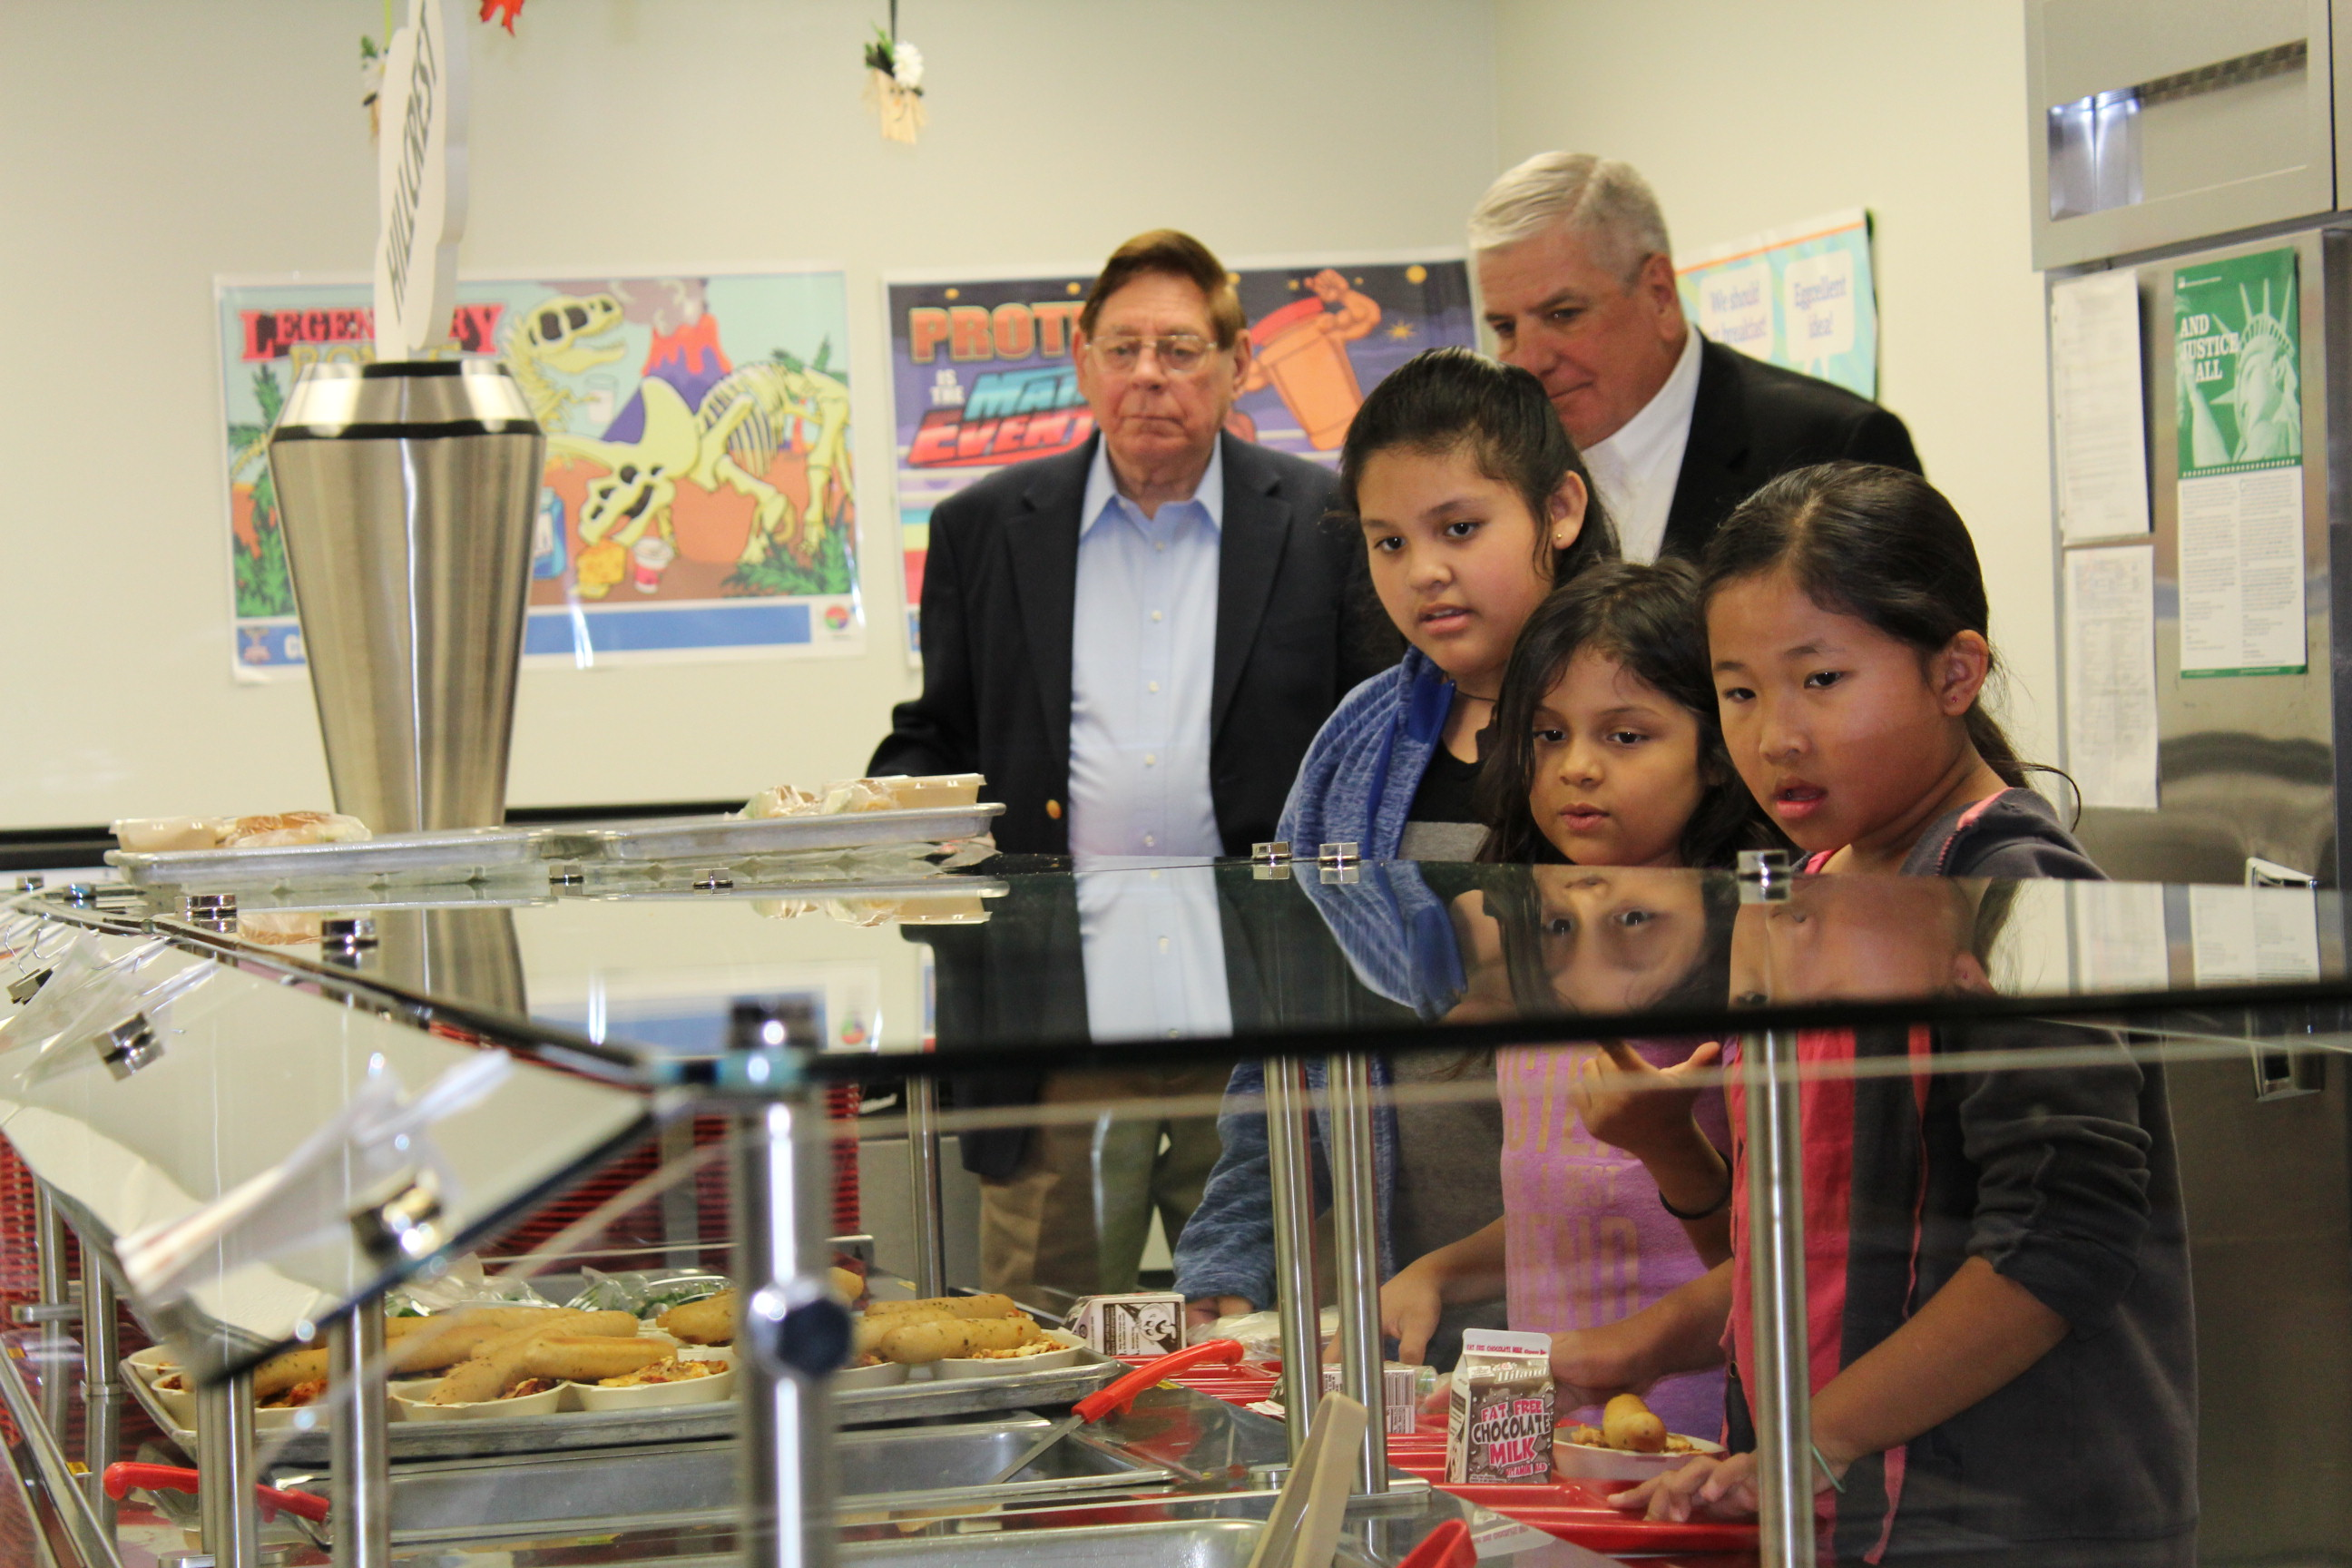 Retired army generals Edward Gerhardt (left) and Daryl McCall get in the lunch line behind students at Hillcrest Elementary School.